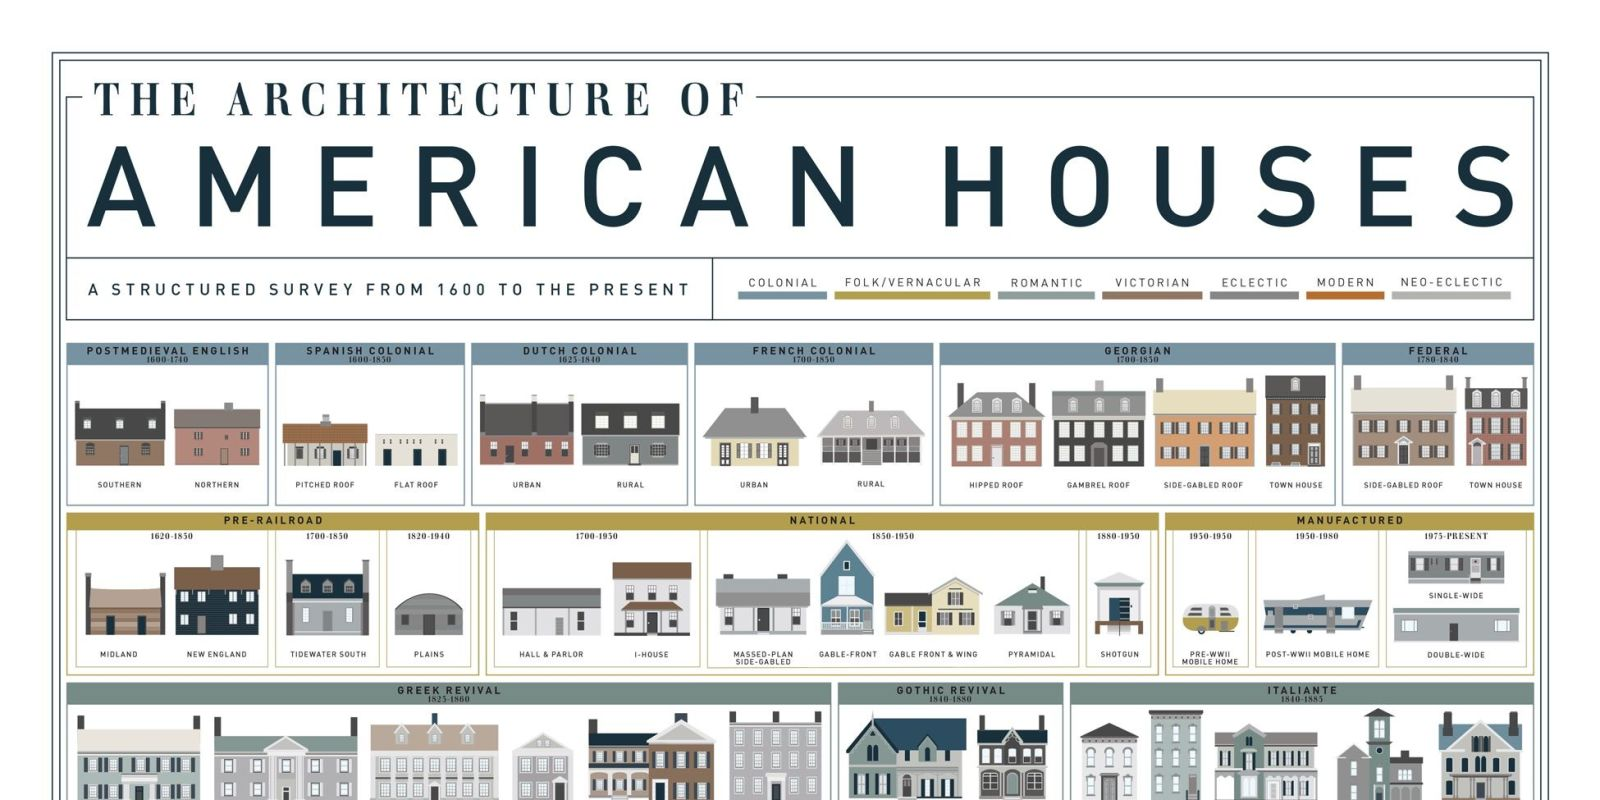 American house styles house architecture for American house styles